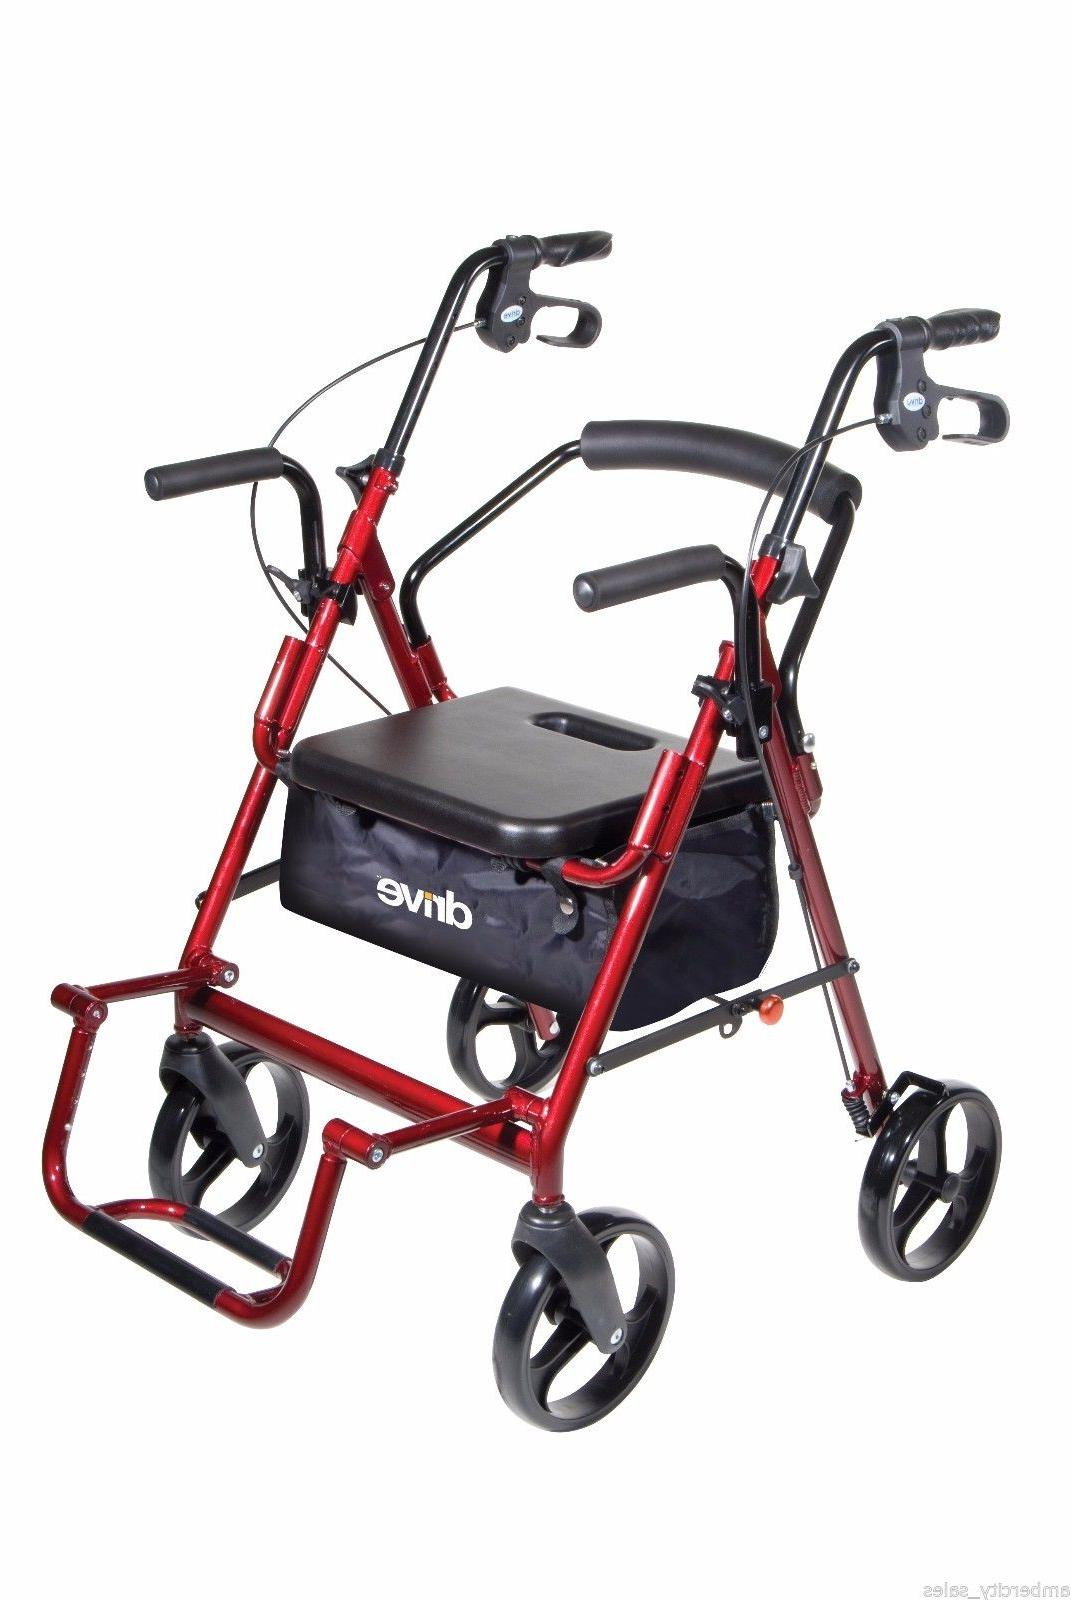 Duet Transport Chair Walker: 2 in 1 combo Drive Medical